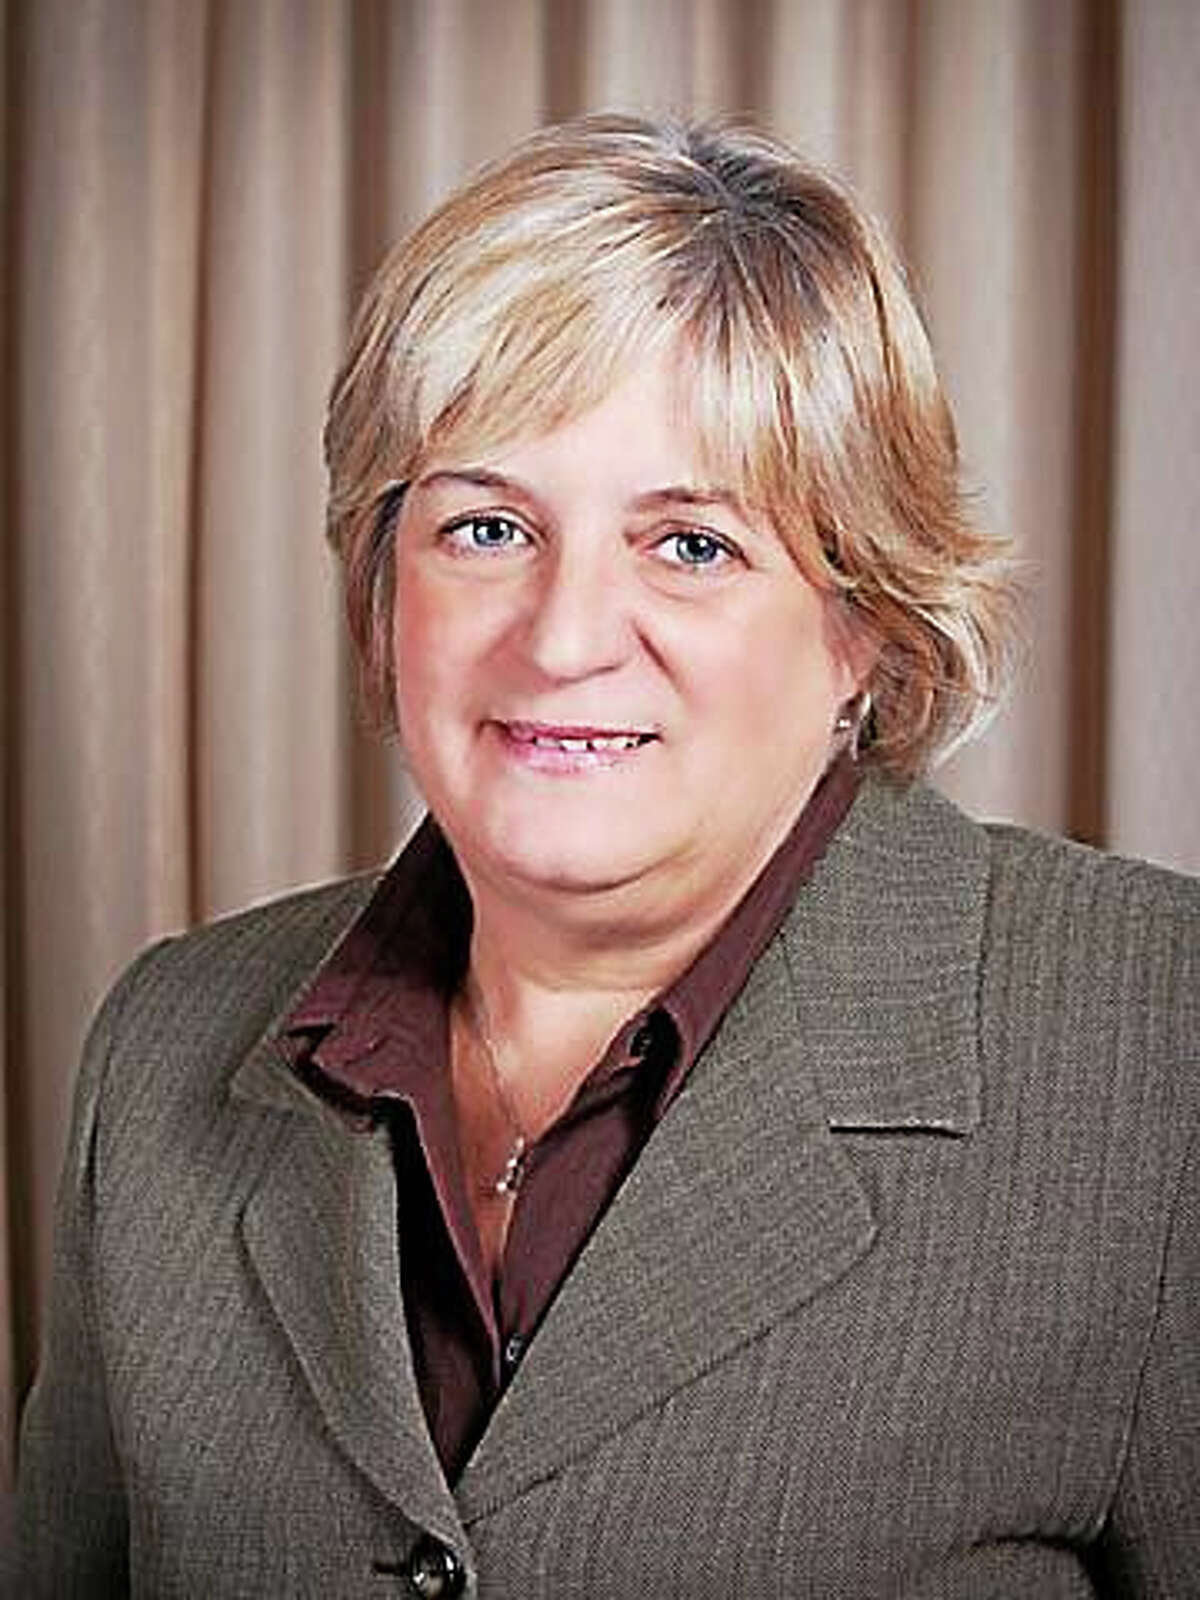 Former Common Councilwoman Linda Salafia was elected Tuesday to both the board of education and the council.